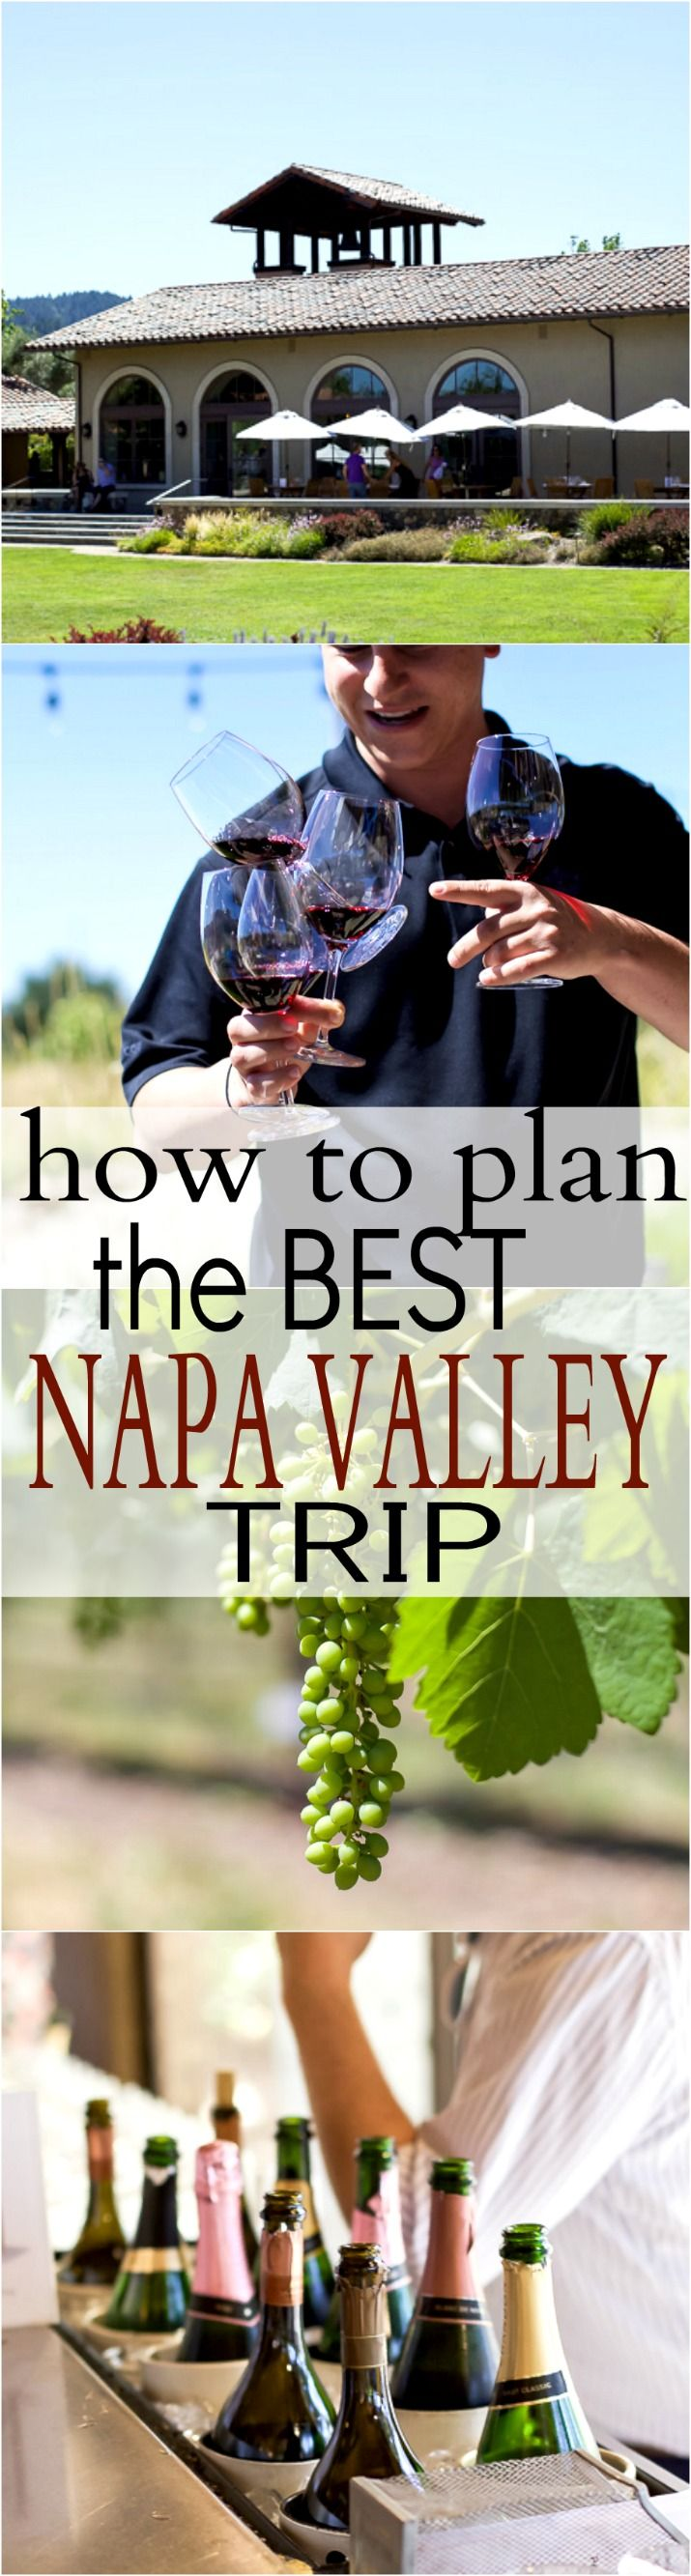 Tips on How to Plan the perfect Napa trip - with advice on where to stay, MUST eat at Restaurants, and the BEST Napa Valley Wineries in town! | joyfulhealthyeats.com #travel #vacation